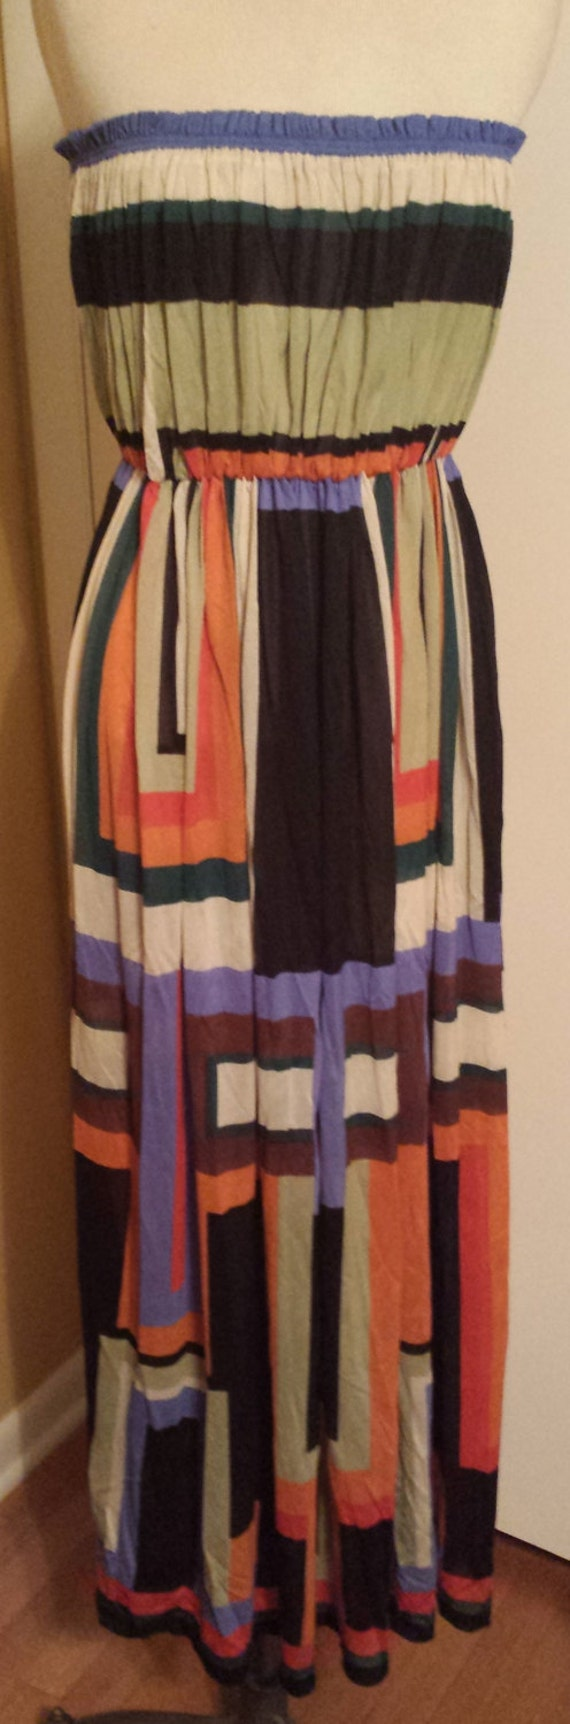 Vintage Strapless Gottex Beach Wear Dress from the